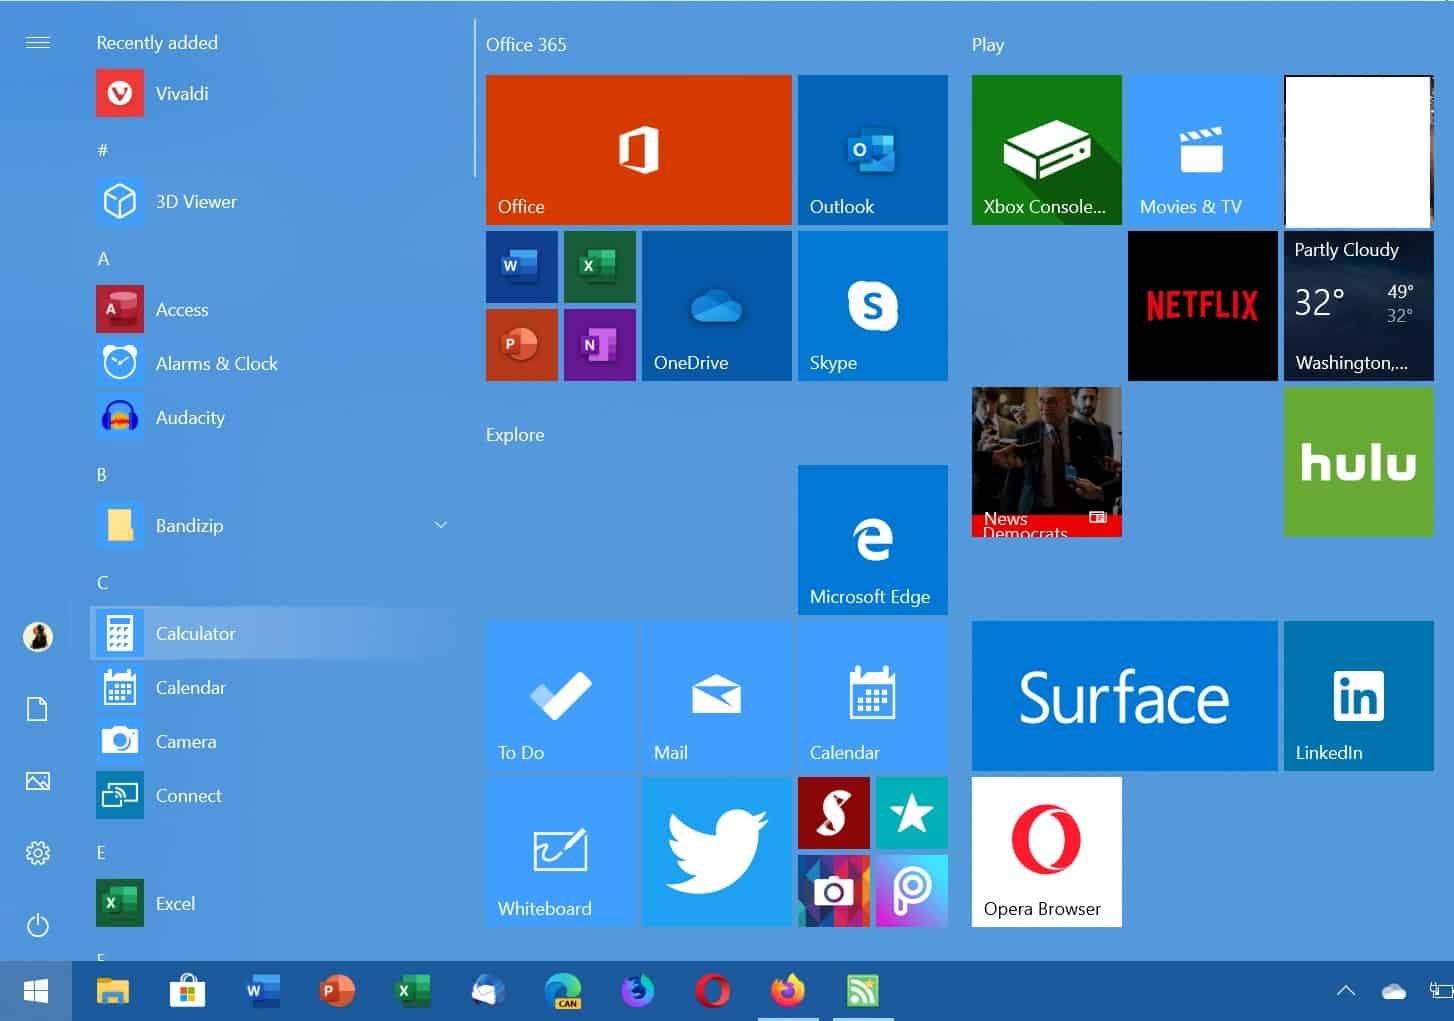 windows 10 suggested apps